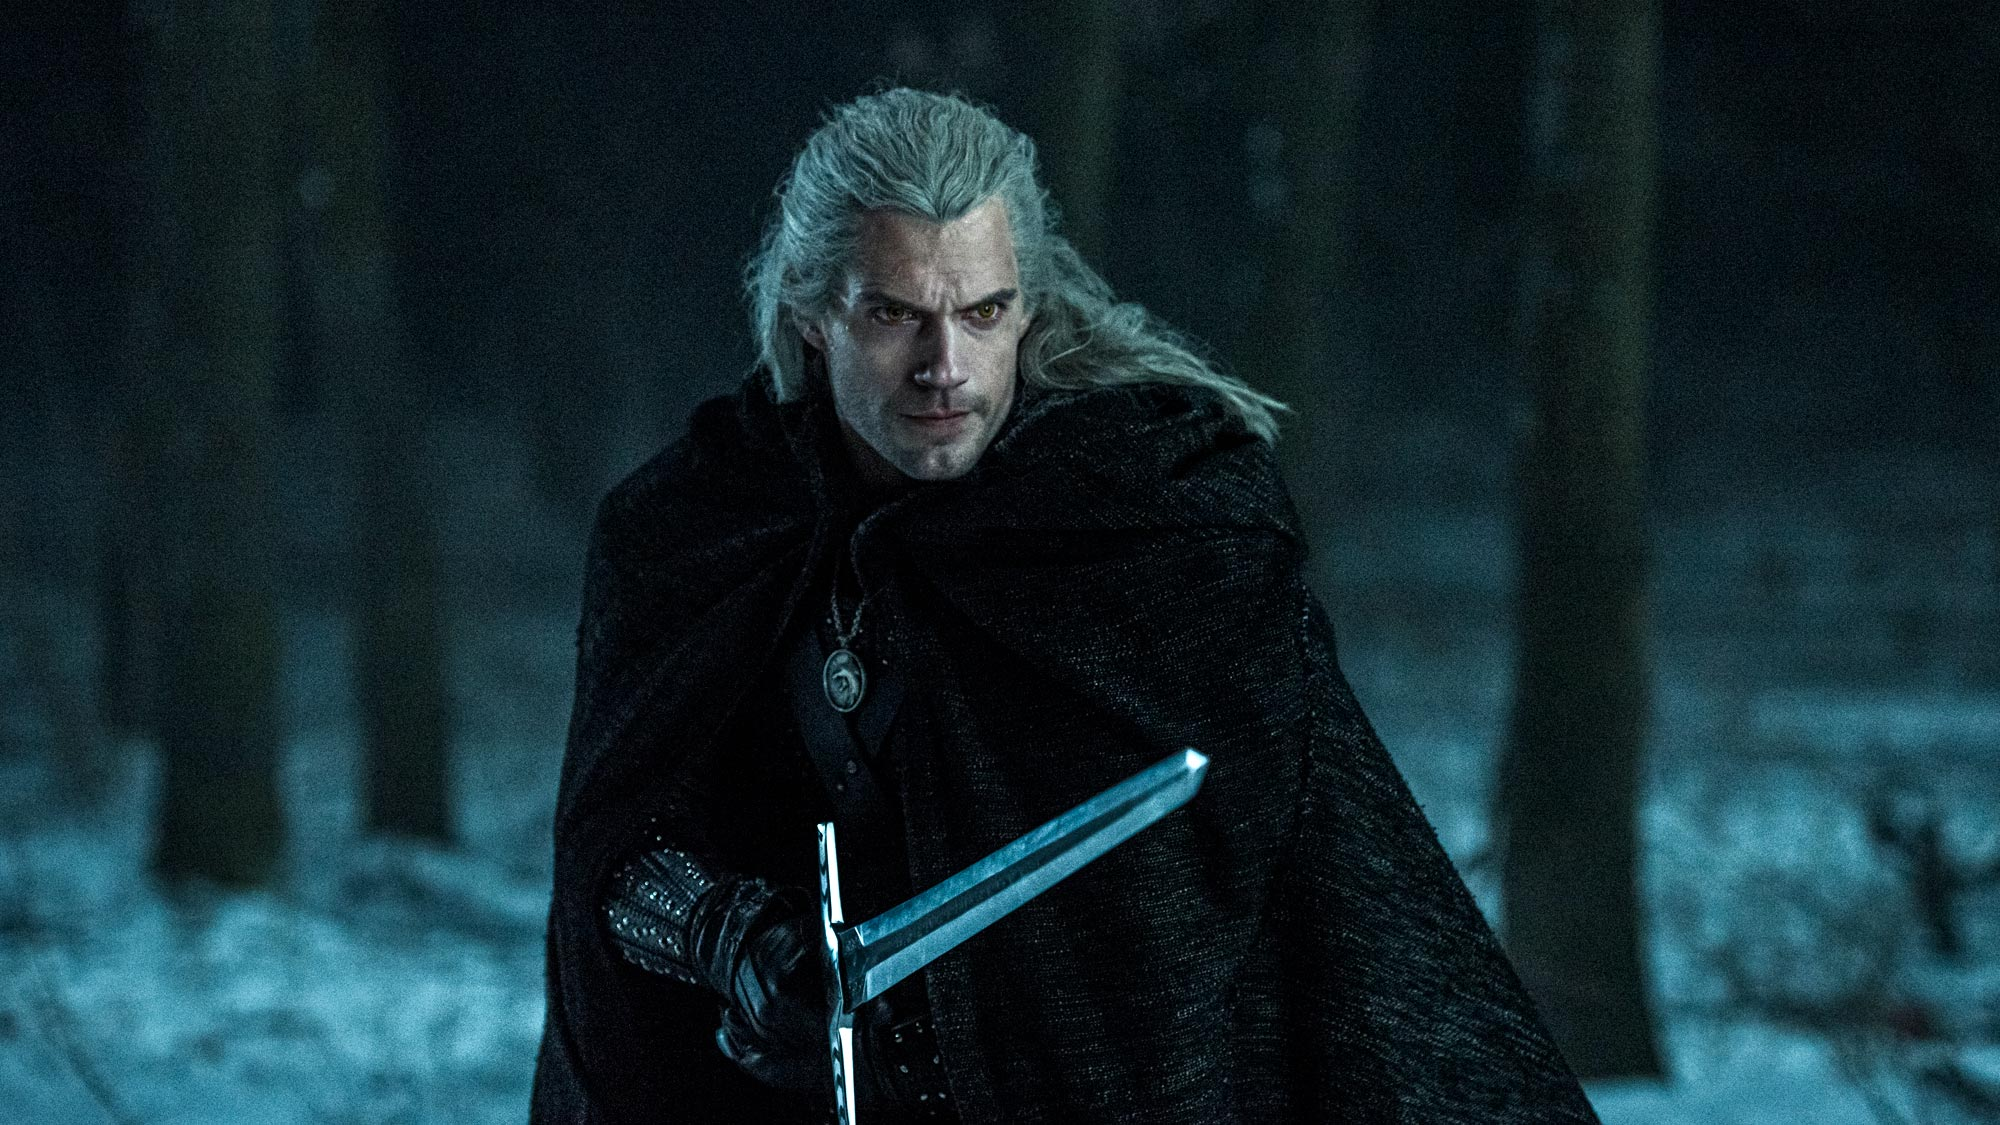 The Witcher season 2 release date, cast, trailer, Henry Cavill characters, photos and  latest news | Tom's Guide